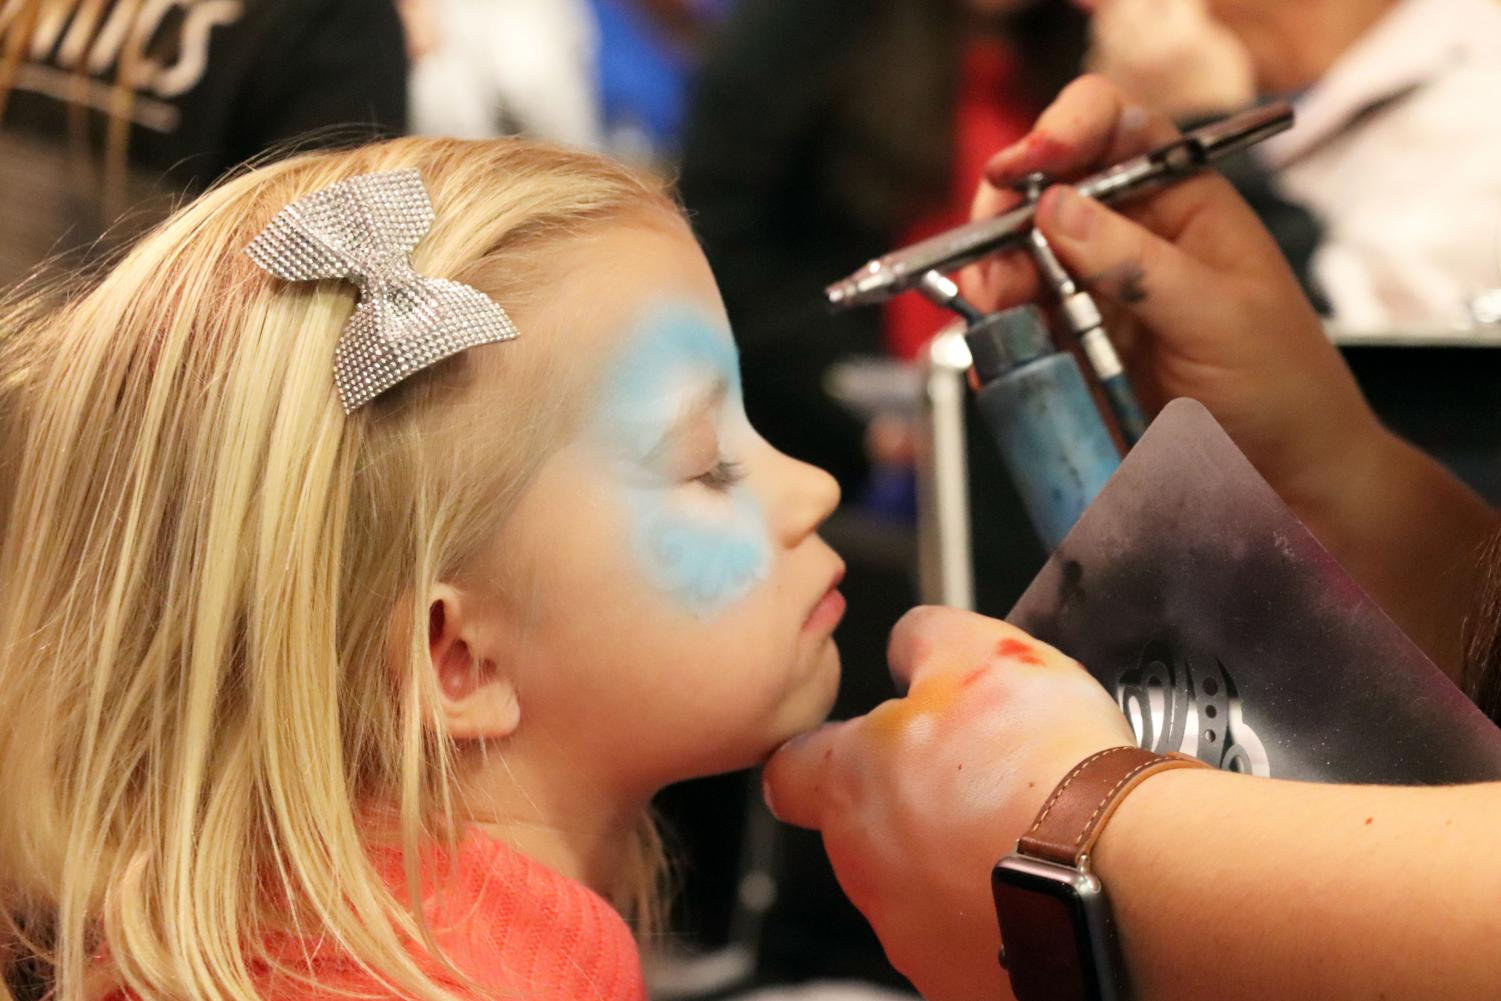 While attending the Fenton Expo with her mother Kristin McDowell, Sinéad McDowell gets face paint at the Dr. Wax Orthodontics booth. The Fenton Expo had many businesses in the Fenton High School with many activities for kids like face painting.